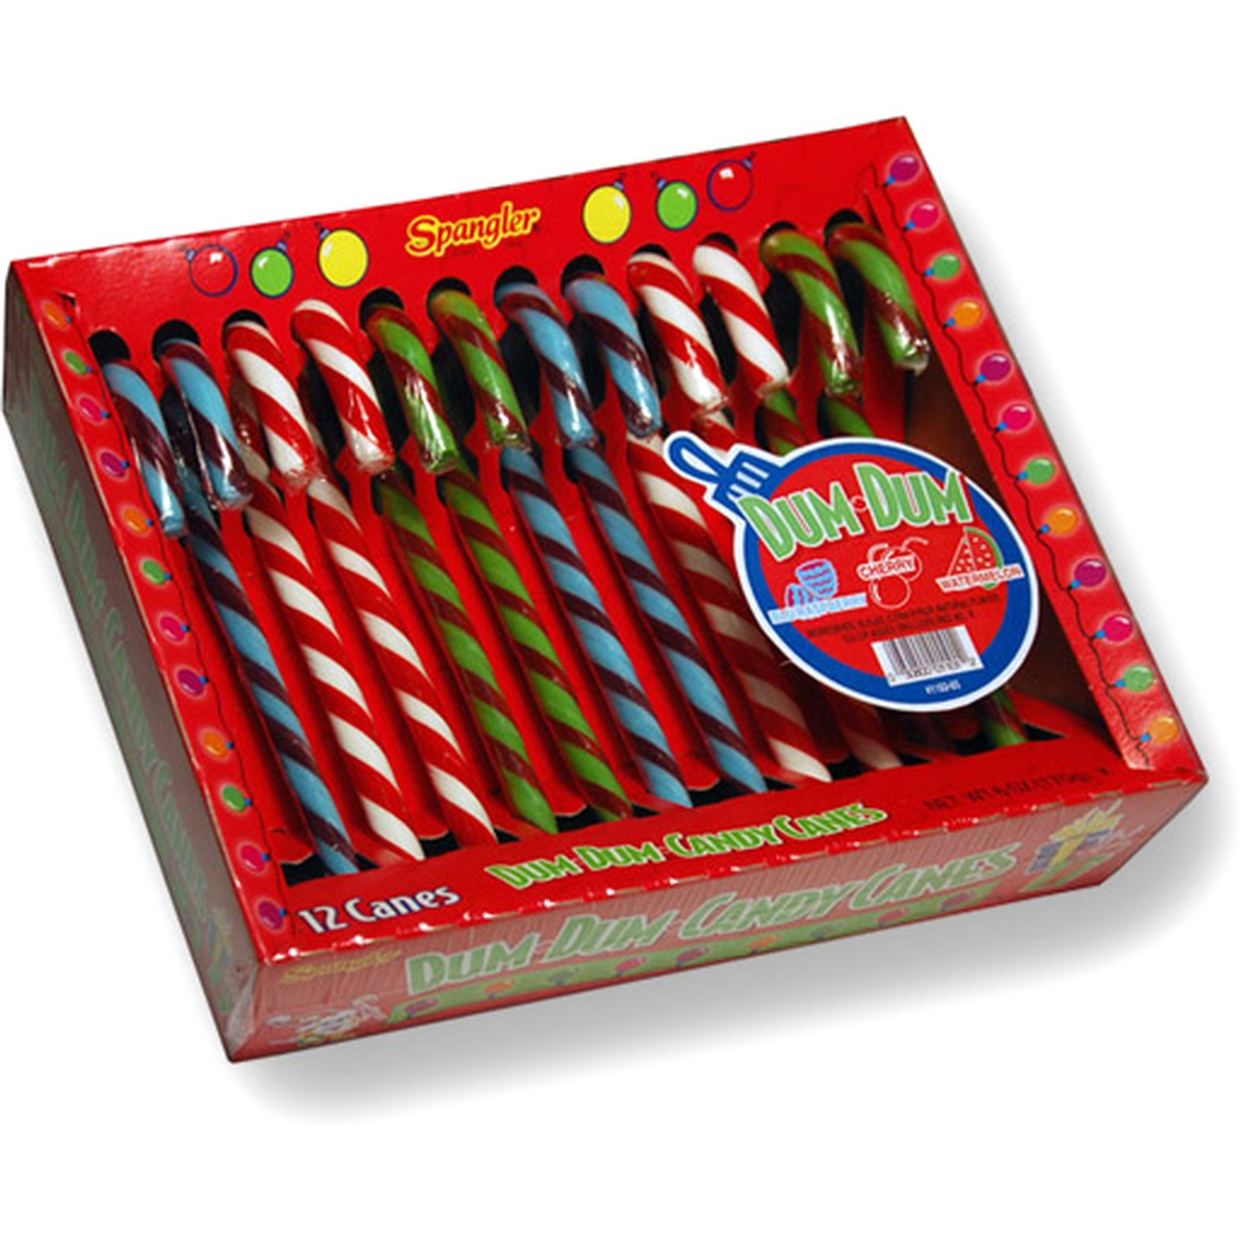 dum dums candy canes 12ct box christmas candy canes christmas candy chocolate holiday gifts christmas candy oh nuts - Christmas Candy Canes